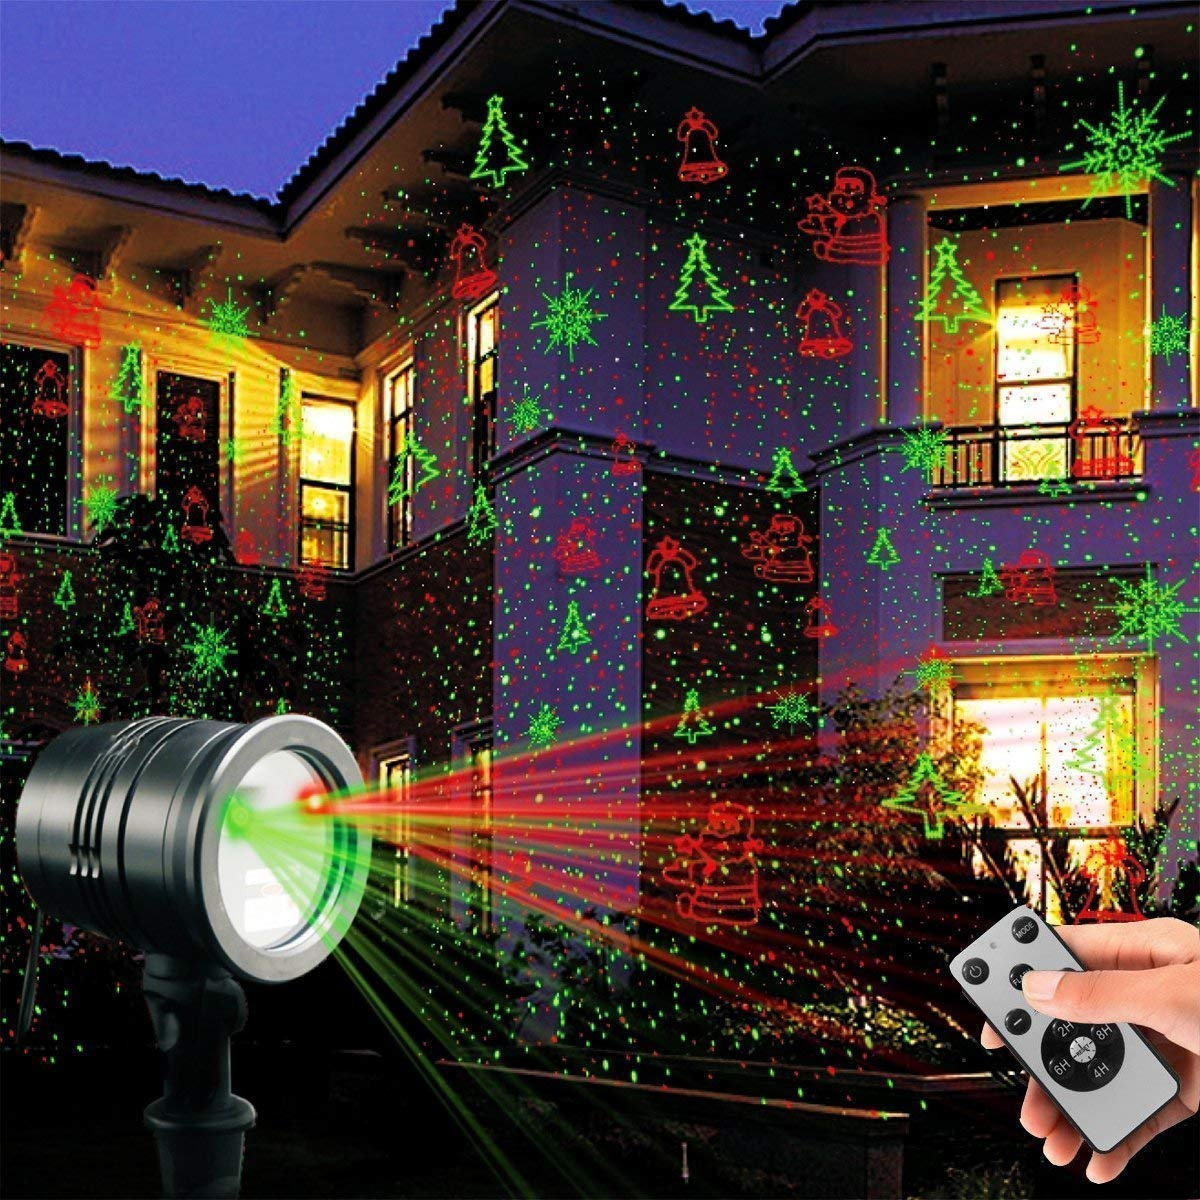 Laser Decorative Lights Garden Laser Light Projector Remote Control Indoor Outdoor Decorations 5W Light Show Green Red Cola Bell for Halloween Christmas Party Holiday etc.